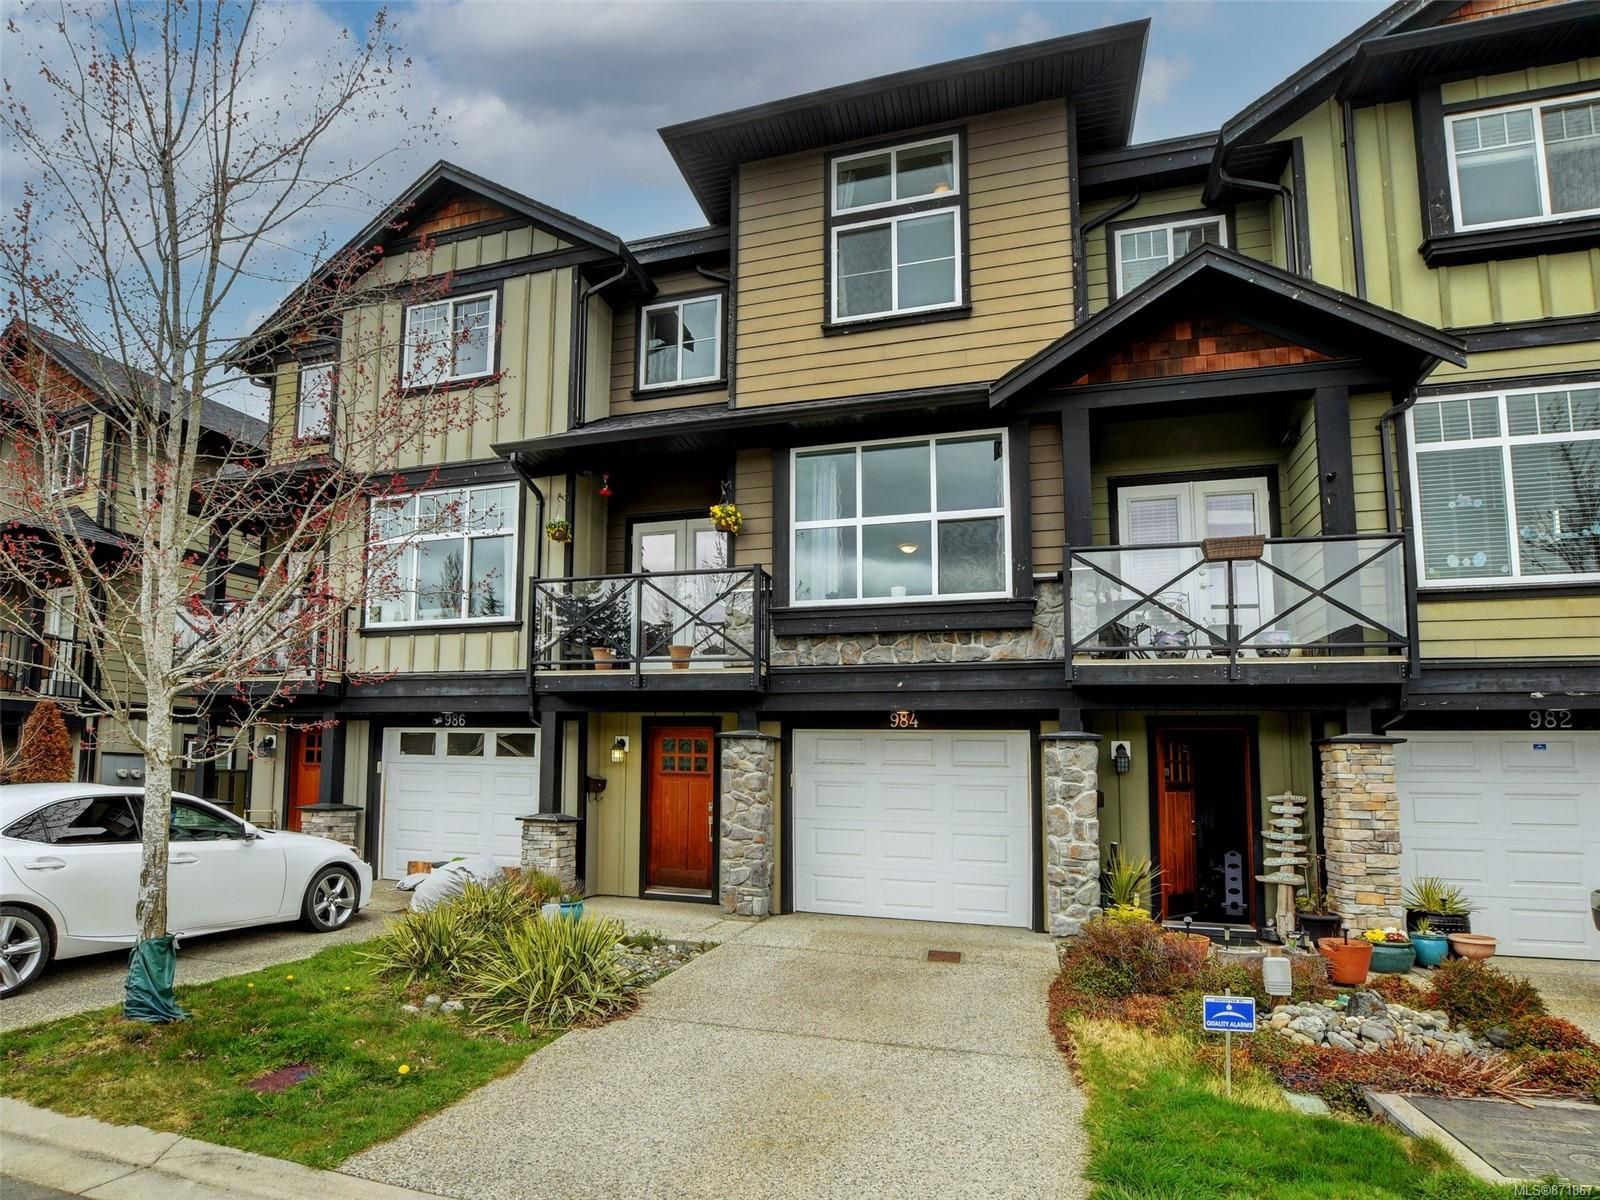 Main Photo: 984 Firehall Creek Rd in : La Walfred Row/Townhouse for sale (Langford)  : MLS®# 871867